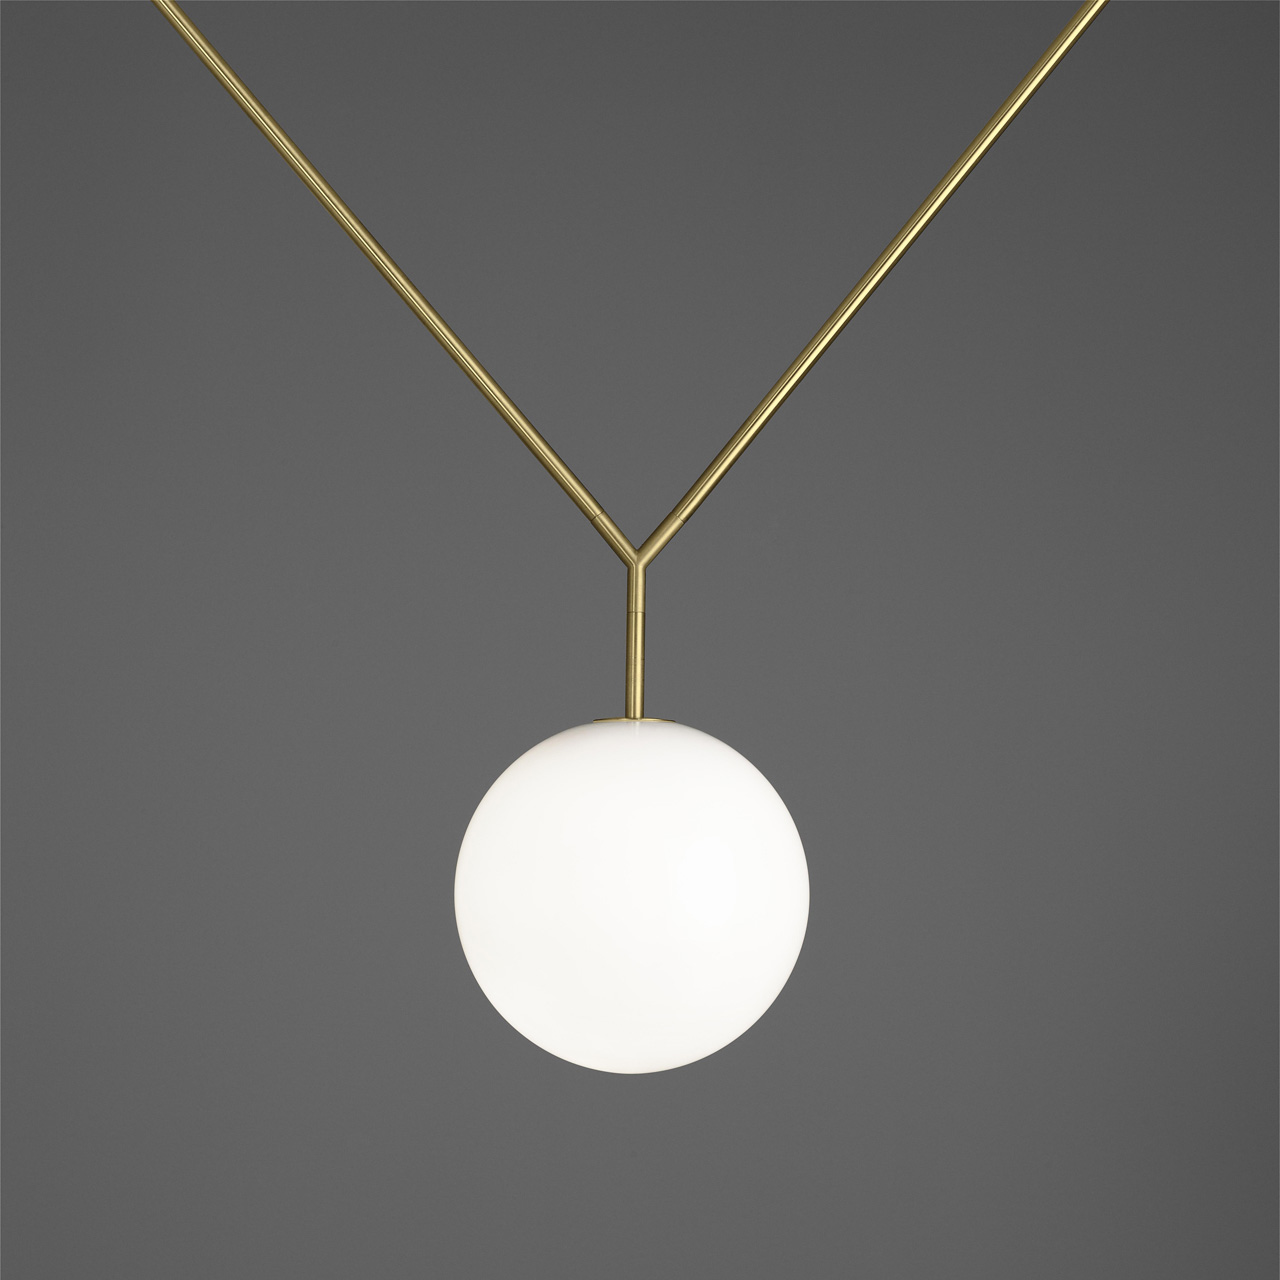 NOTCH byMichael Anastassiades for FLOS. Suspension lamp with adjustable height, regulated by varying the angle of the braces.